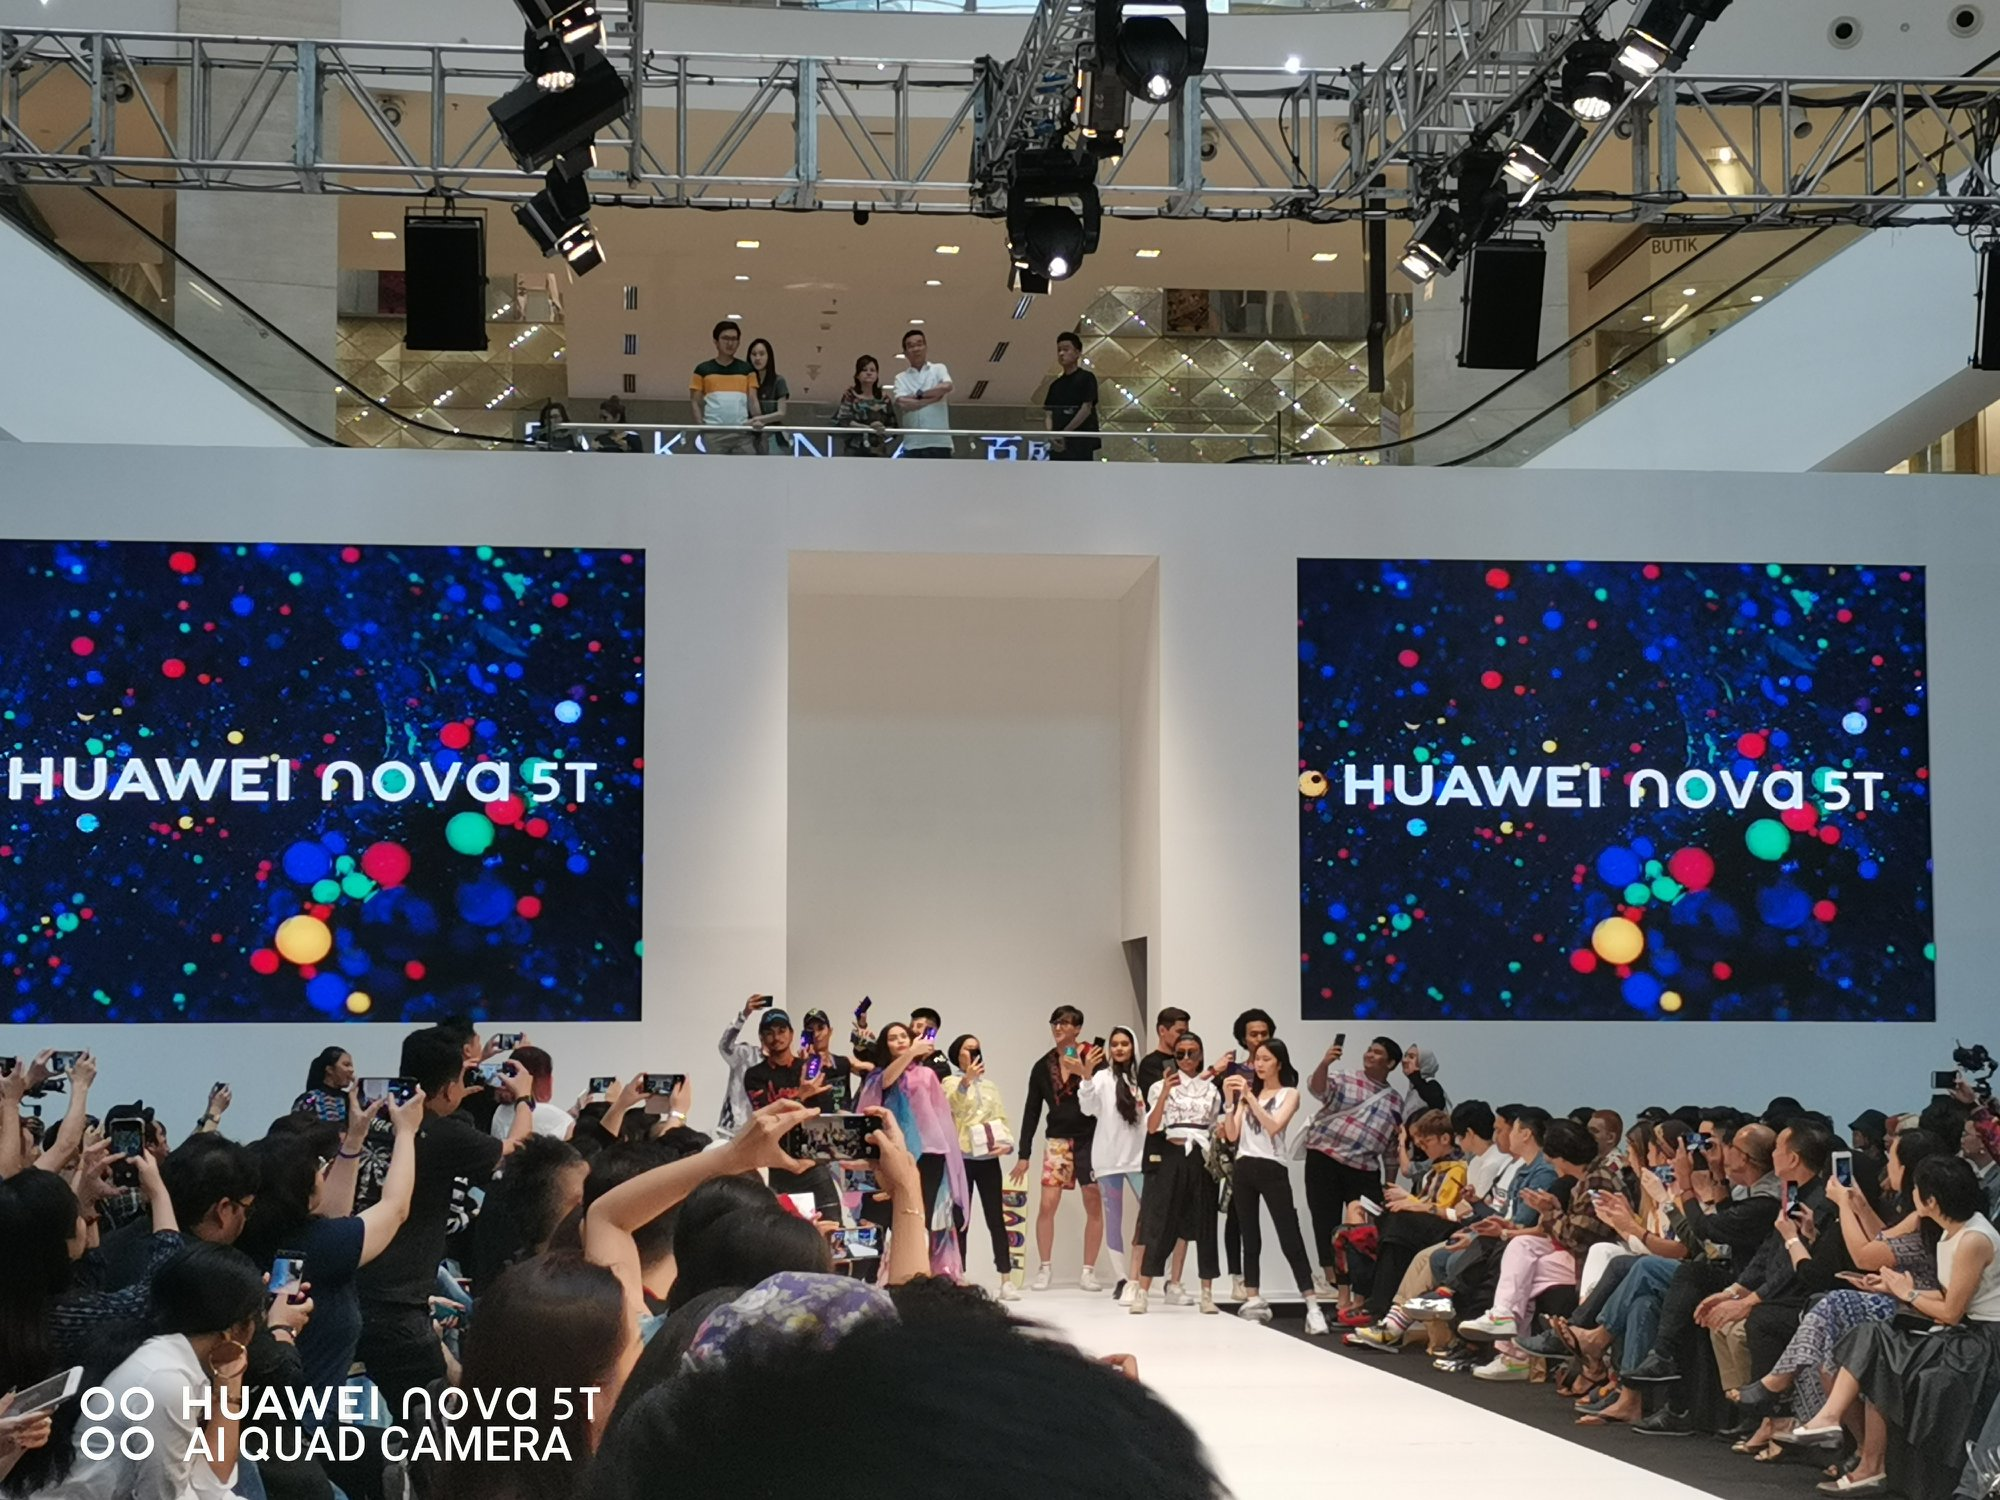 Image from Huawei Mobile (Facebook)